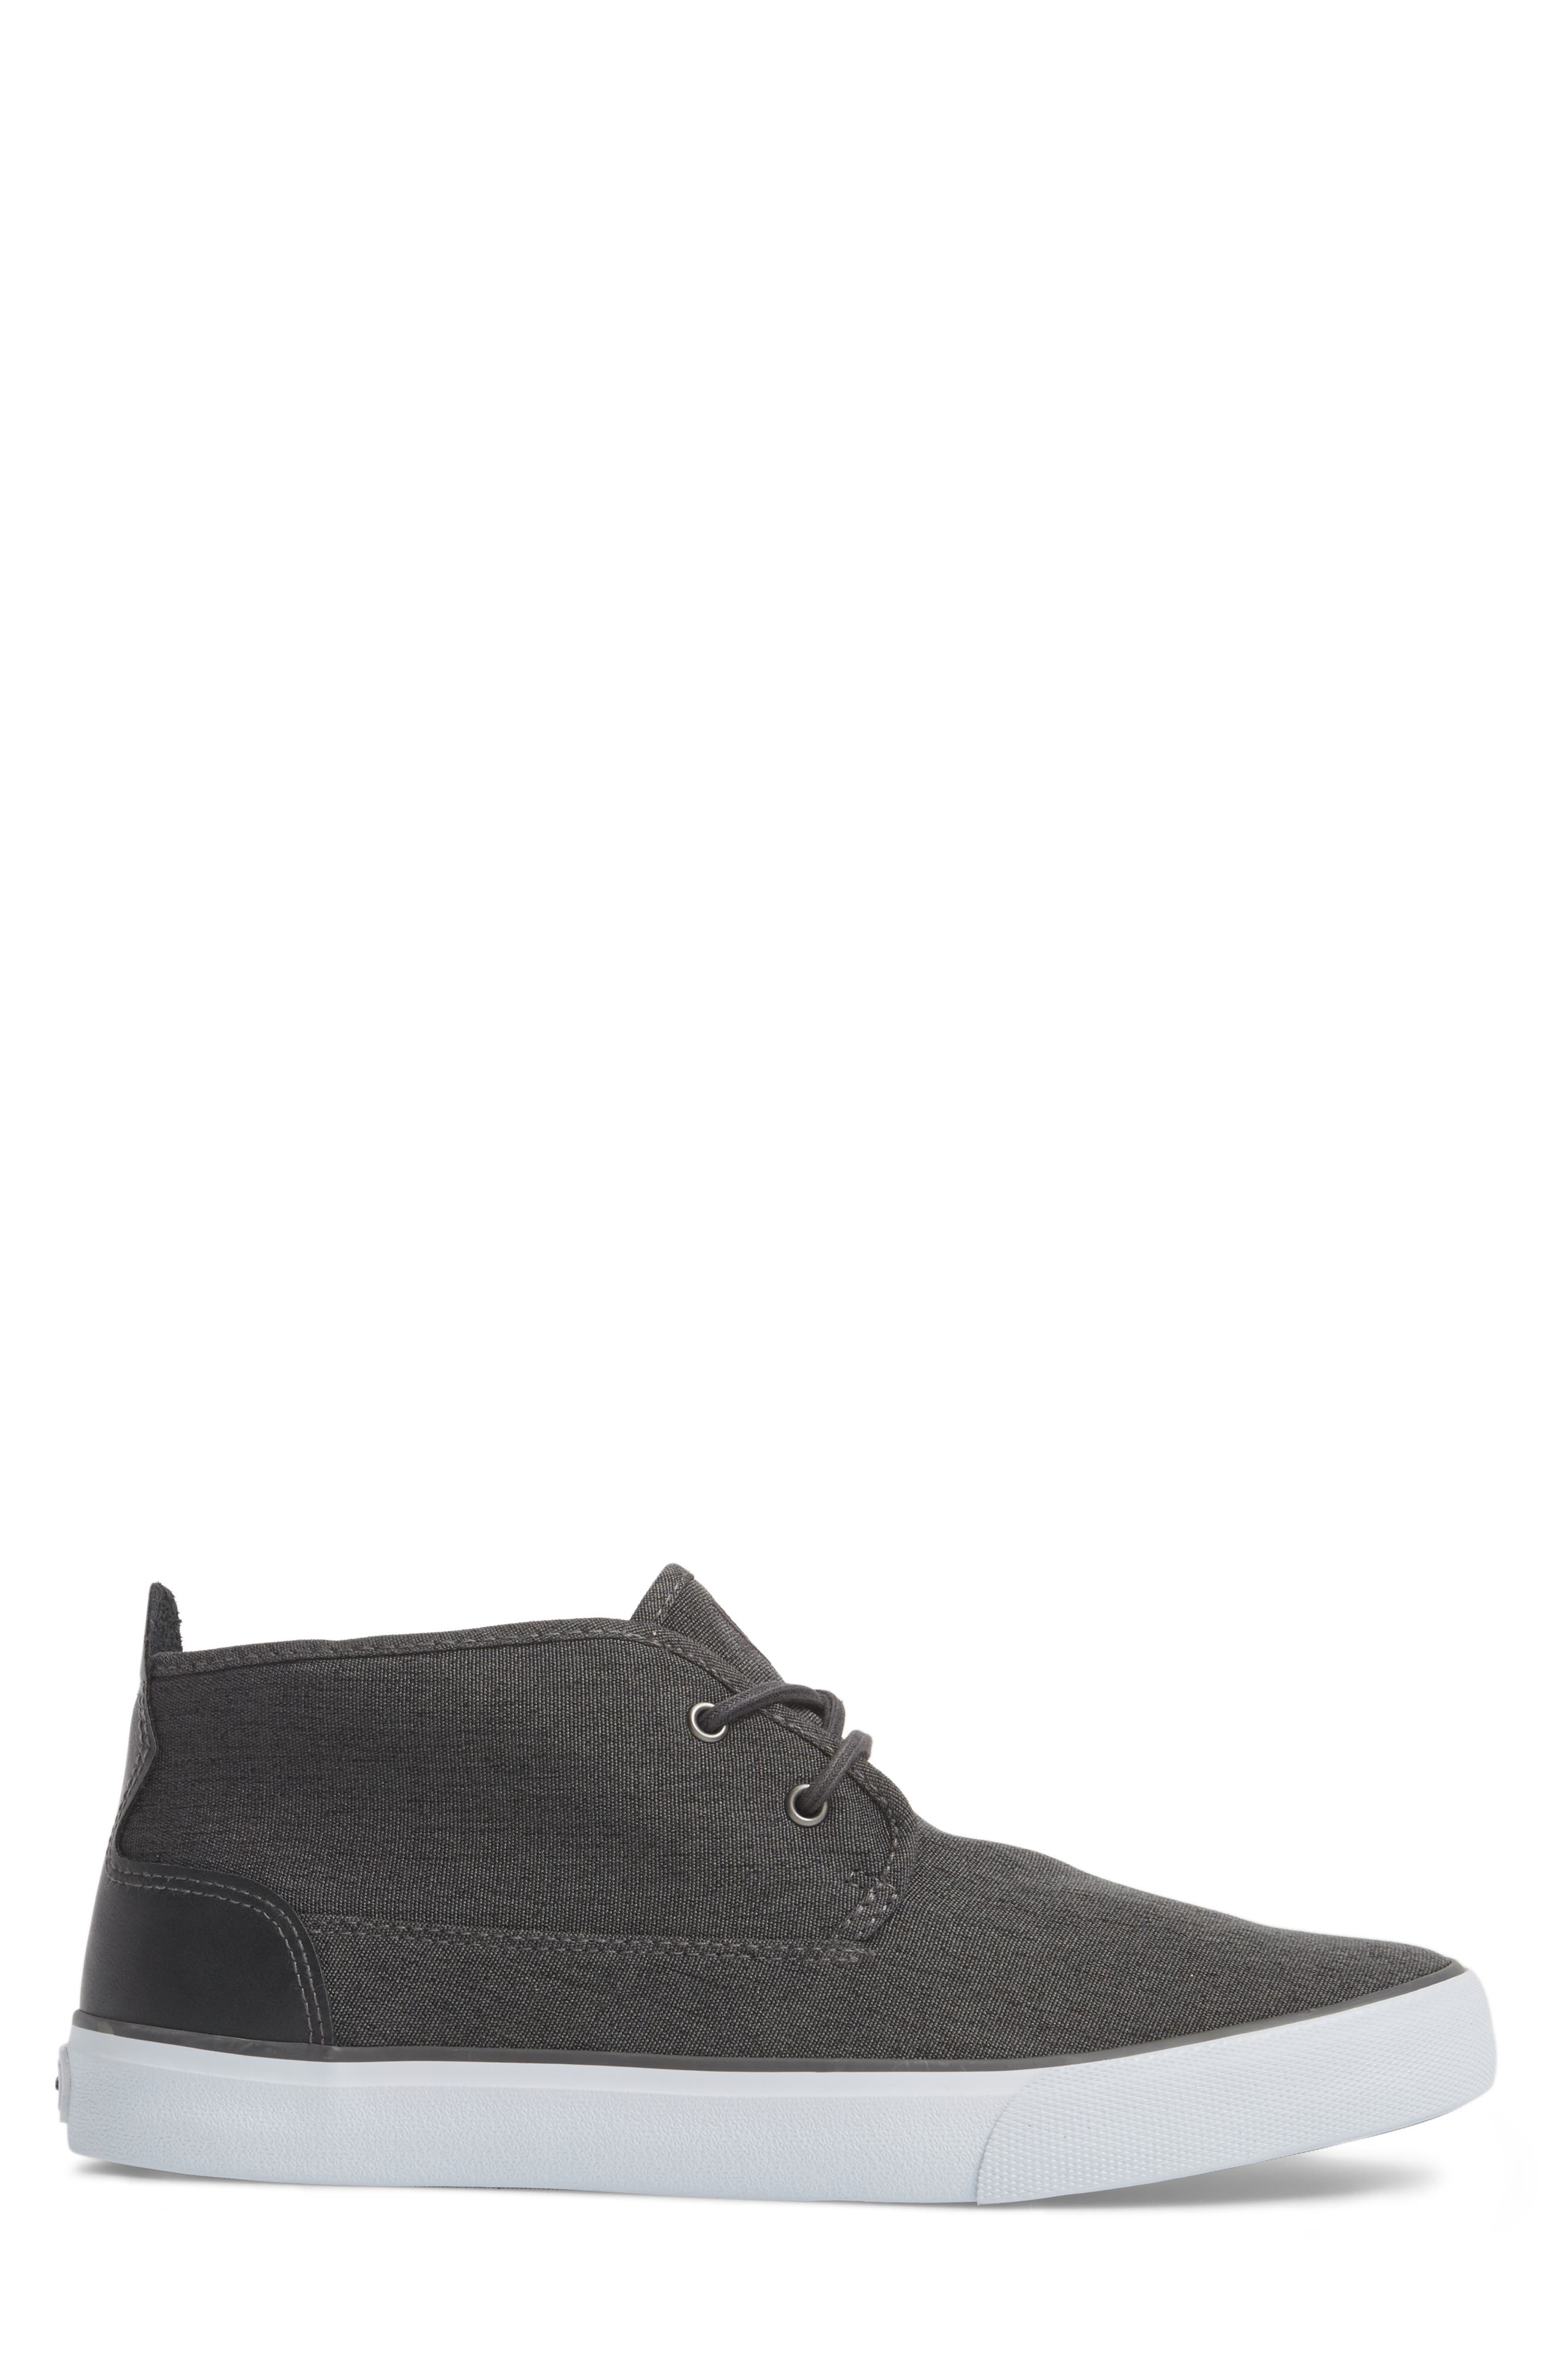 Reade Chukka Sneaker,                             Alternate thumbnail 3, color,                             027